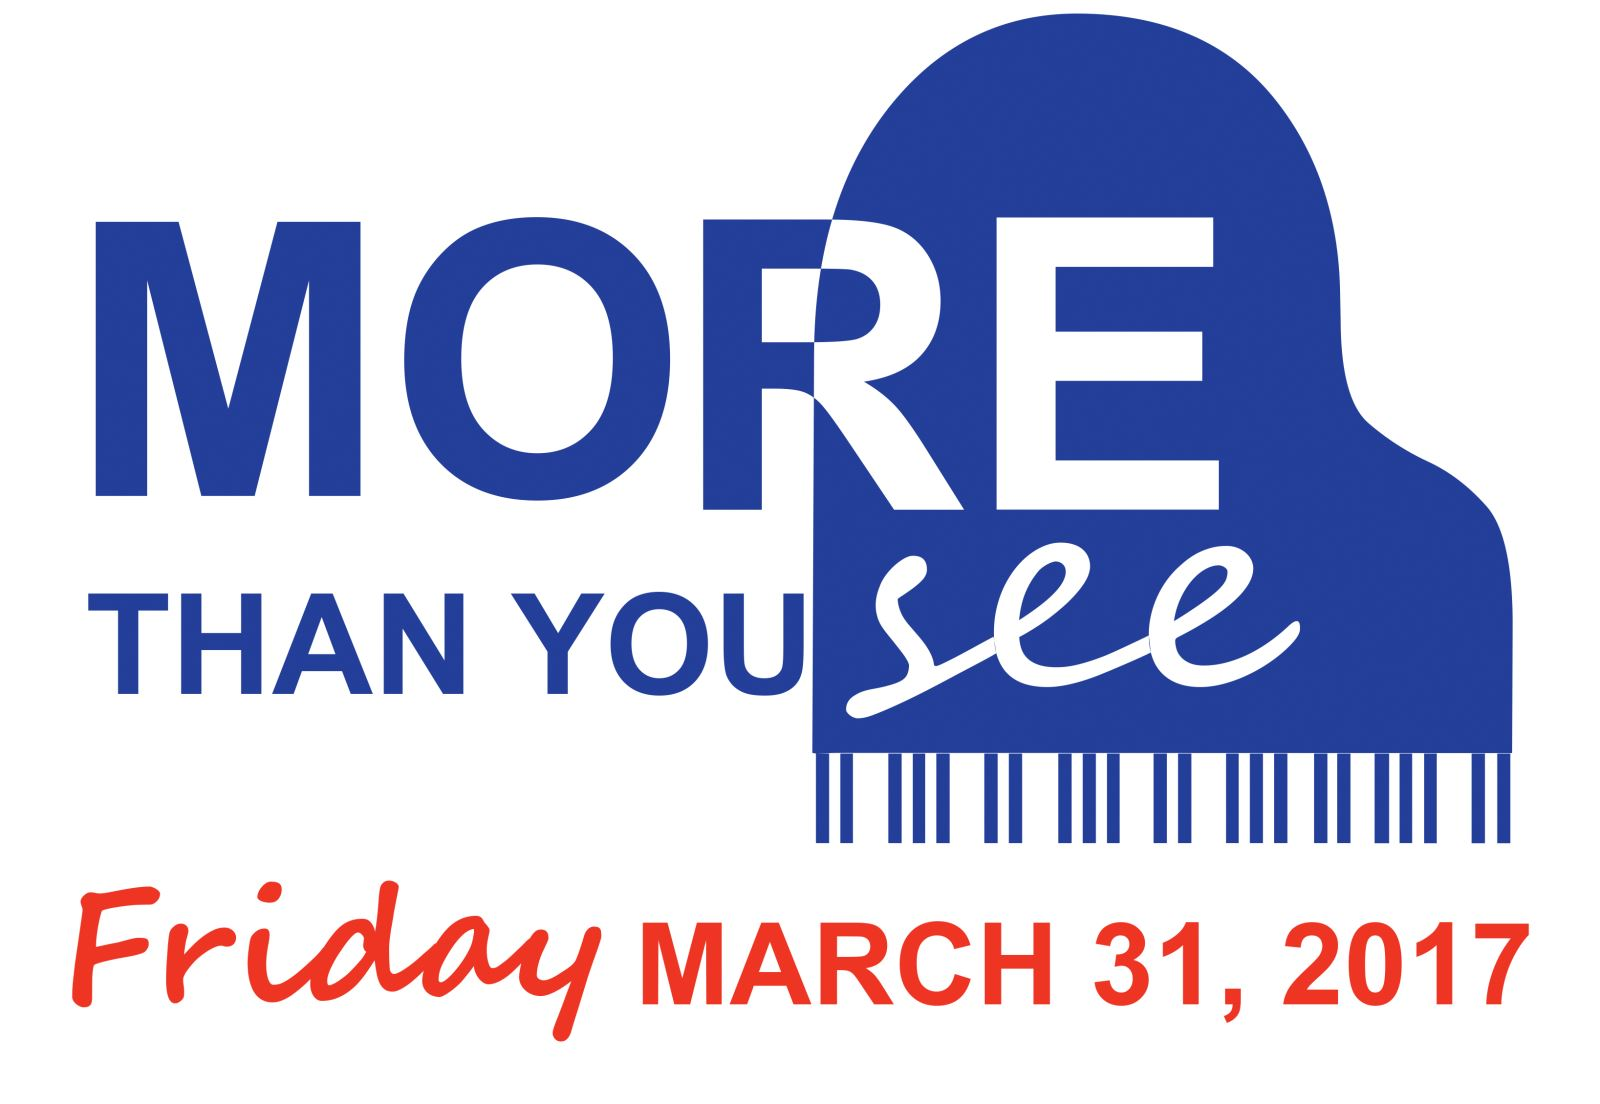 More Than You See 2017 - Use Code EARLYBIRD to Get Your Discounted Tickets